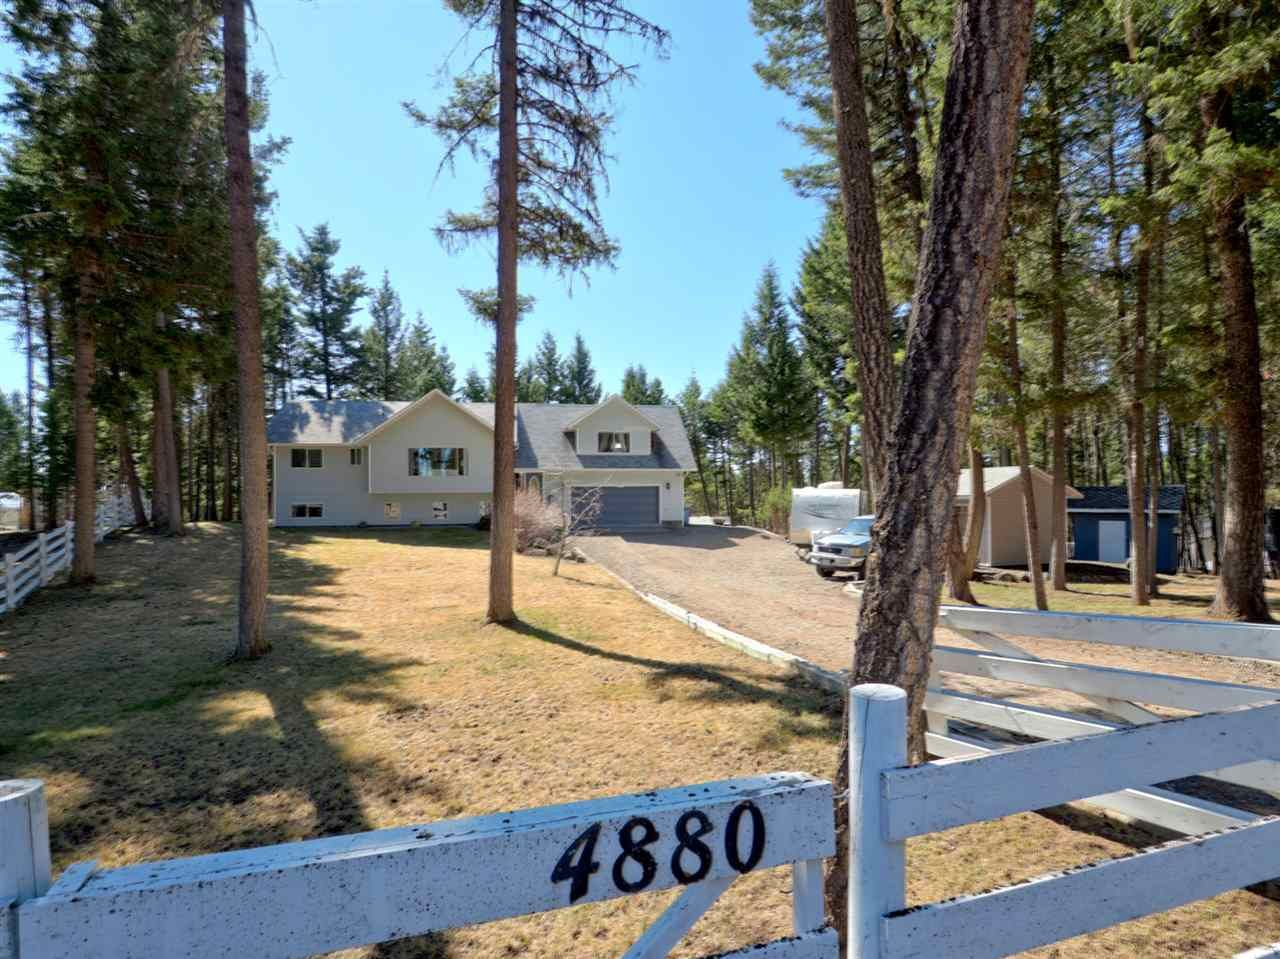 Main Photo: 4880 WAWPUSS Place in 108 Mile Ranch: 108 Ranch House for sale (100 Mile House (Zone 10))  : MLS®# R2566834